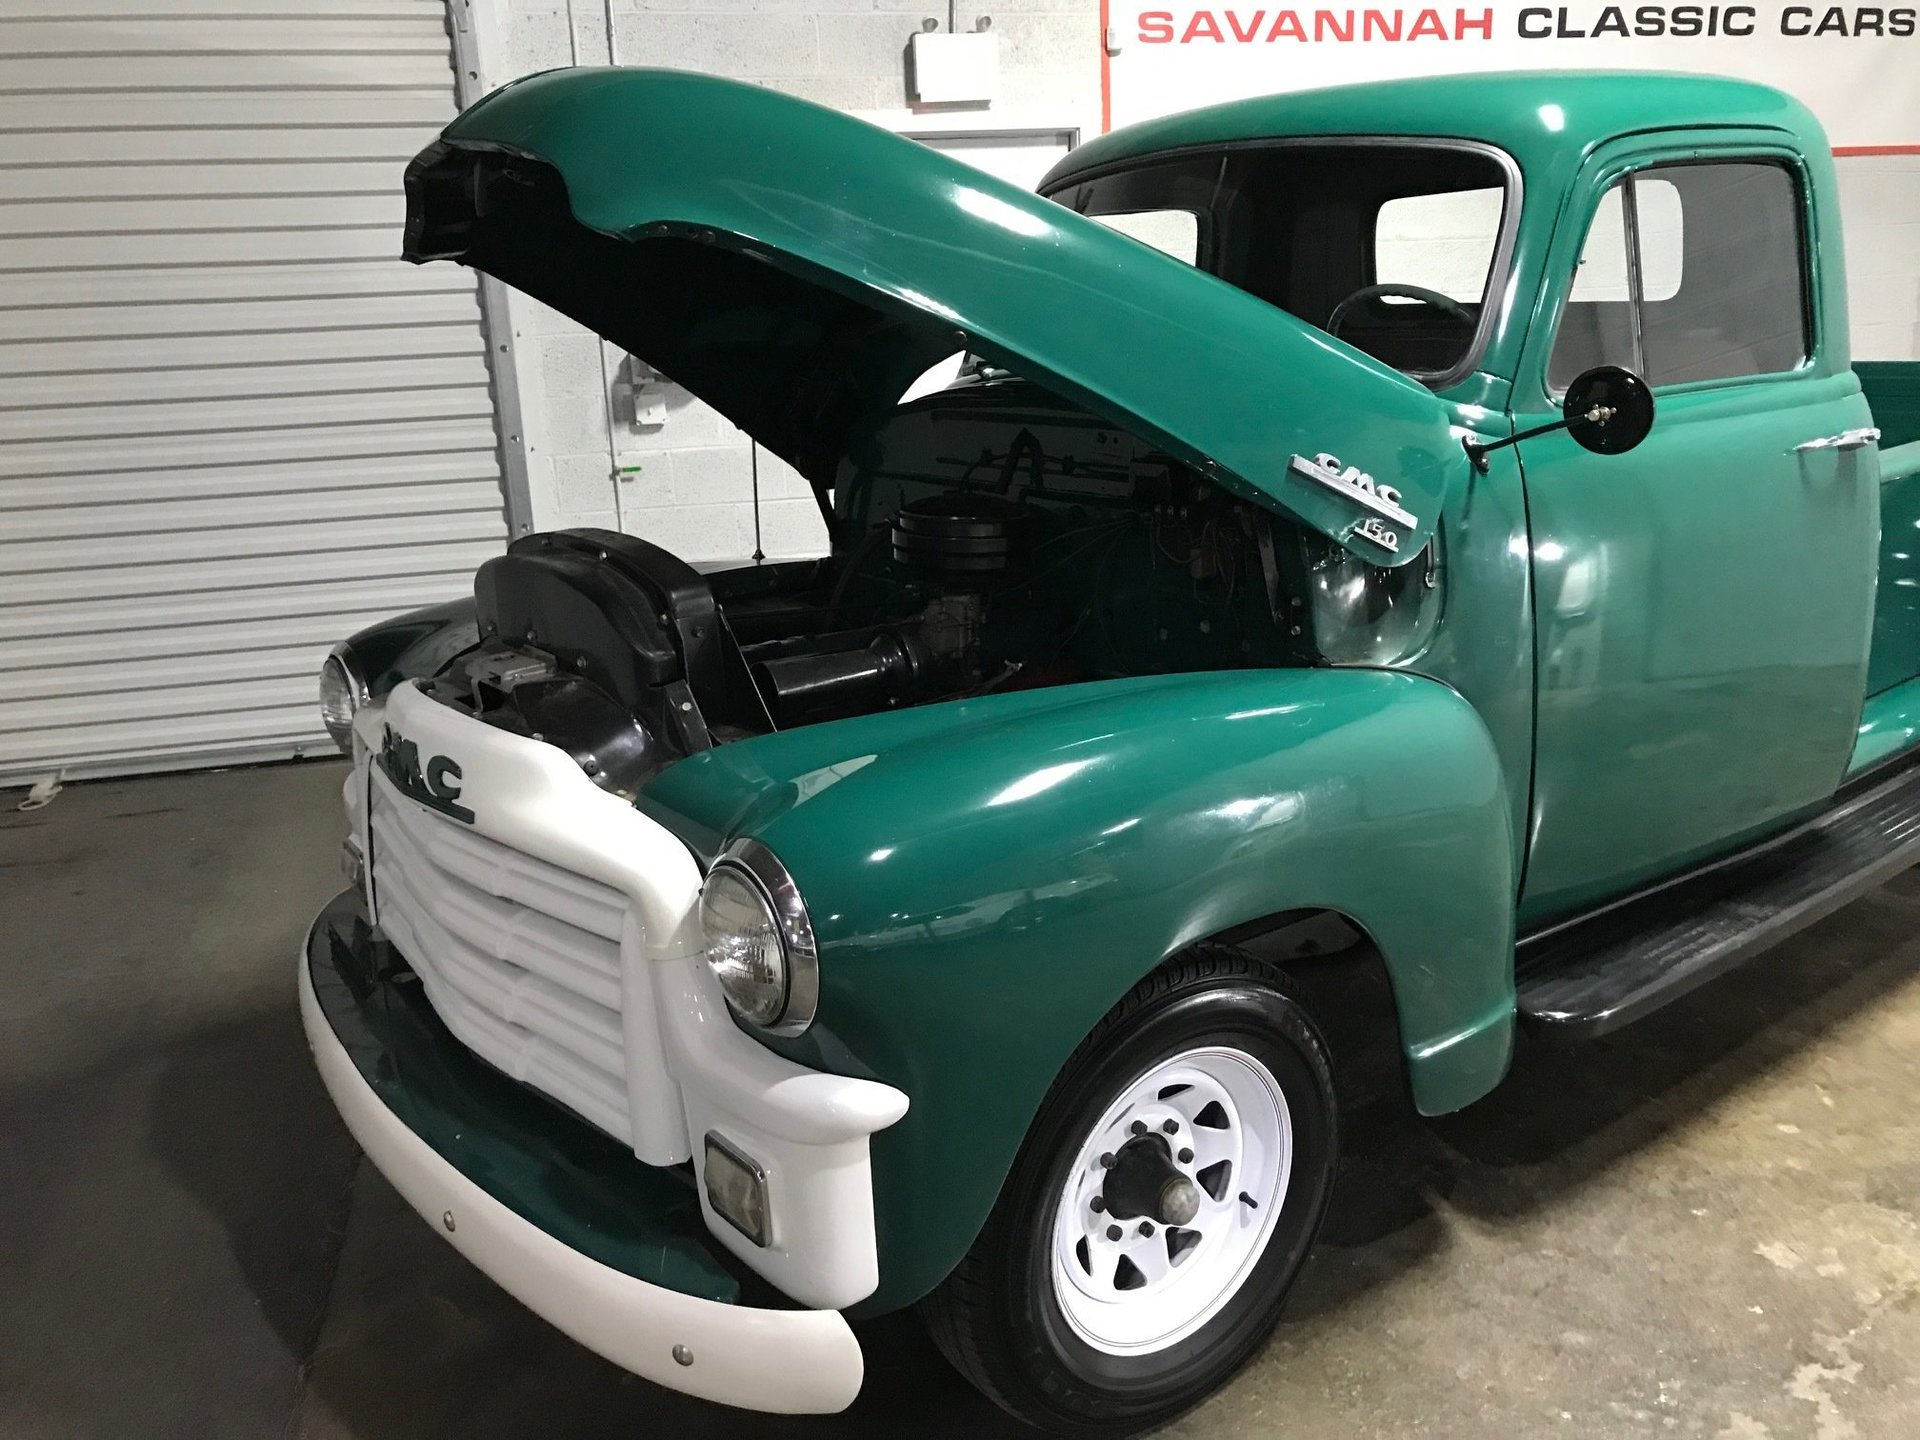 1954 Gmc Pickup Truck For Sale 78796 Mcg